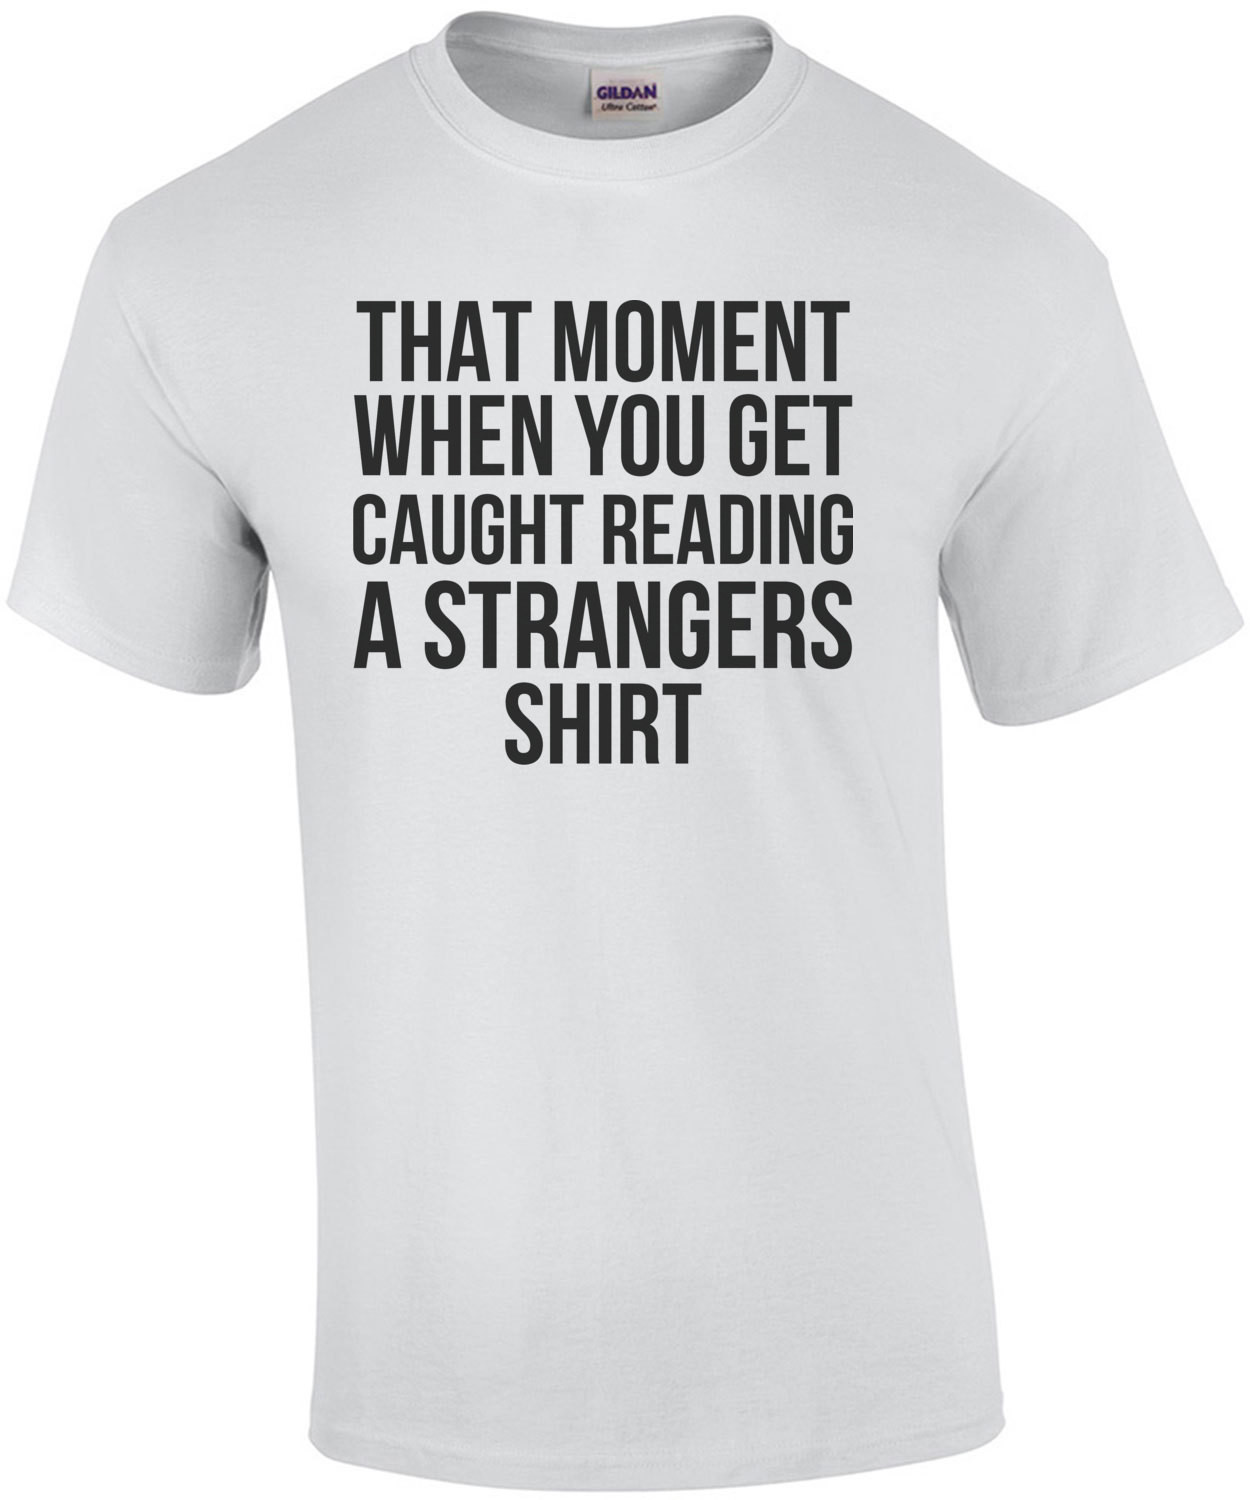 That Moment When You Get Caught Reading A Strangers Shirt T-Shirt